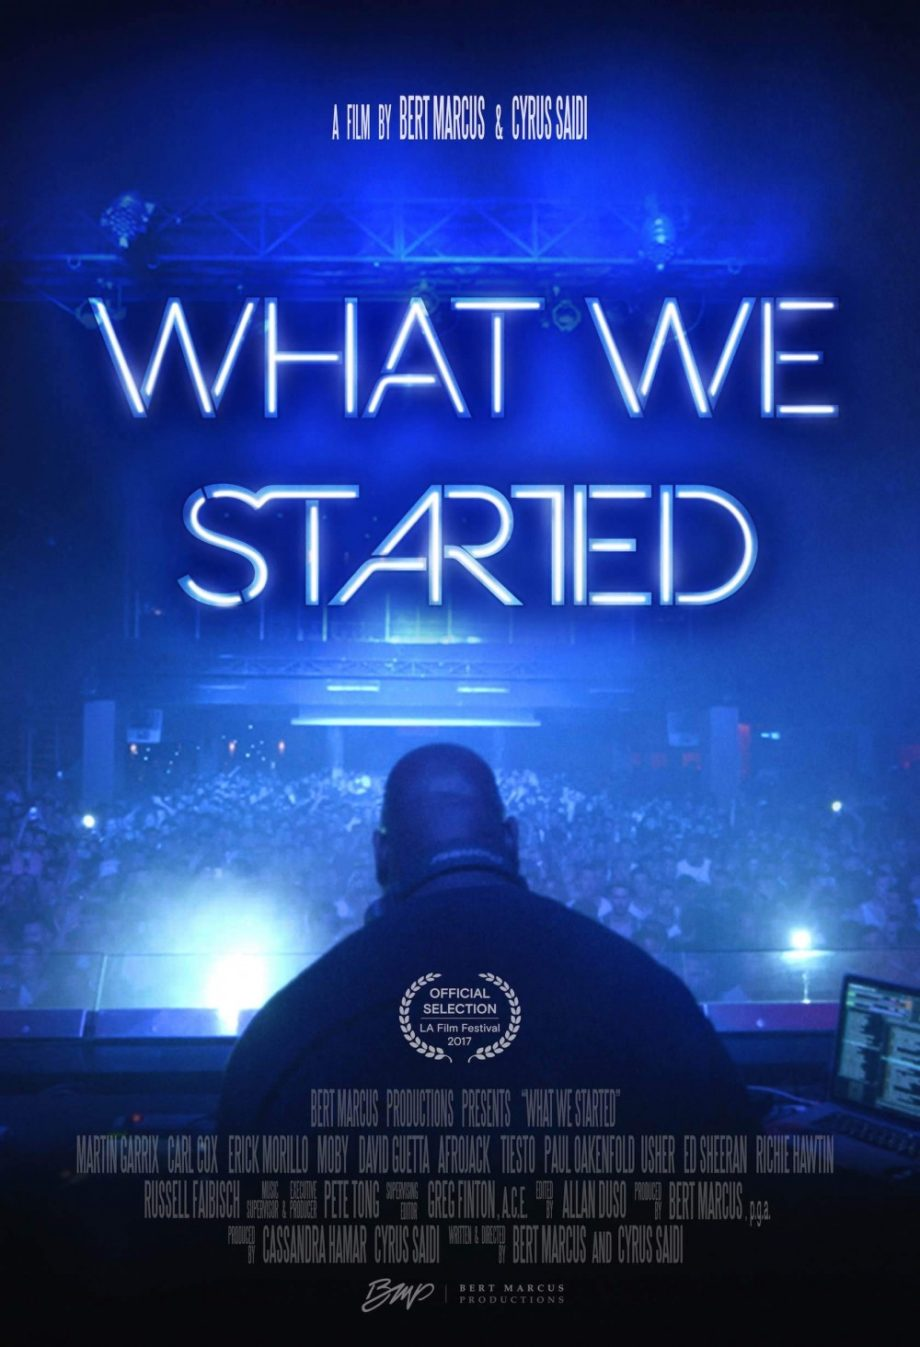 """Here's When & Where to Stream the """"What We Started"""" Documentary"""